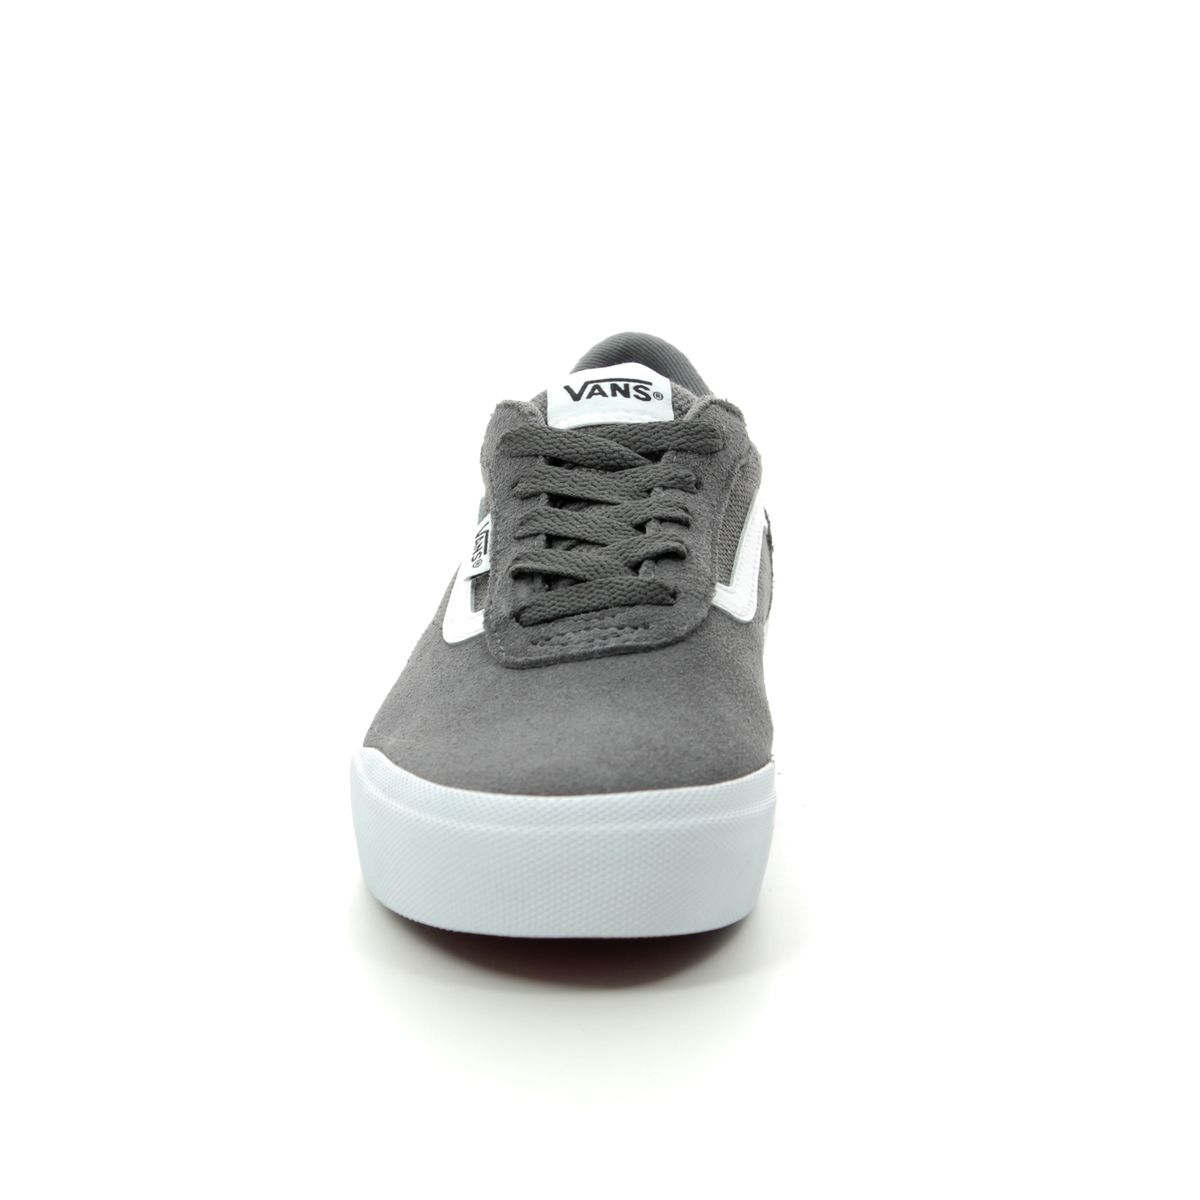 c5b3f17f110 Vans Trainers - Dark Grey - VN0A3WMXQ 35 PALOMAR YOUTH